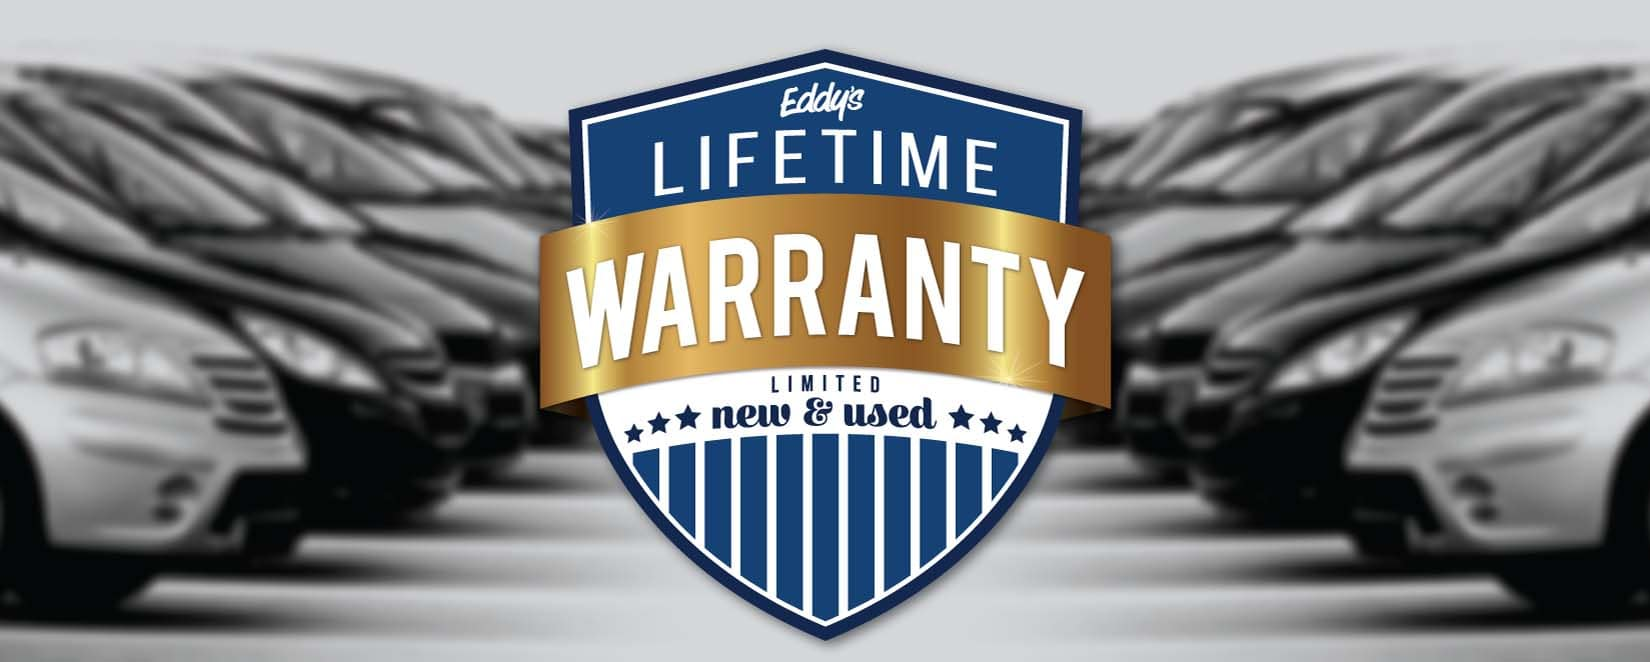 Lifetime Warranty Banner